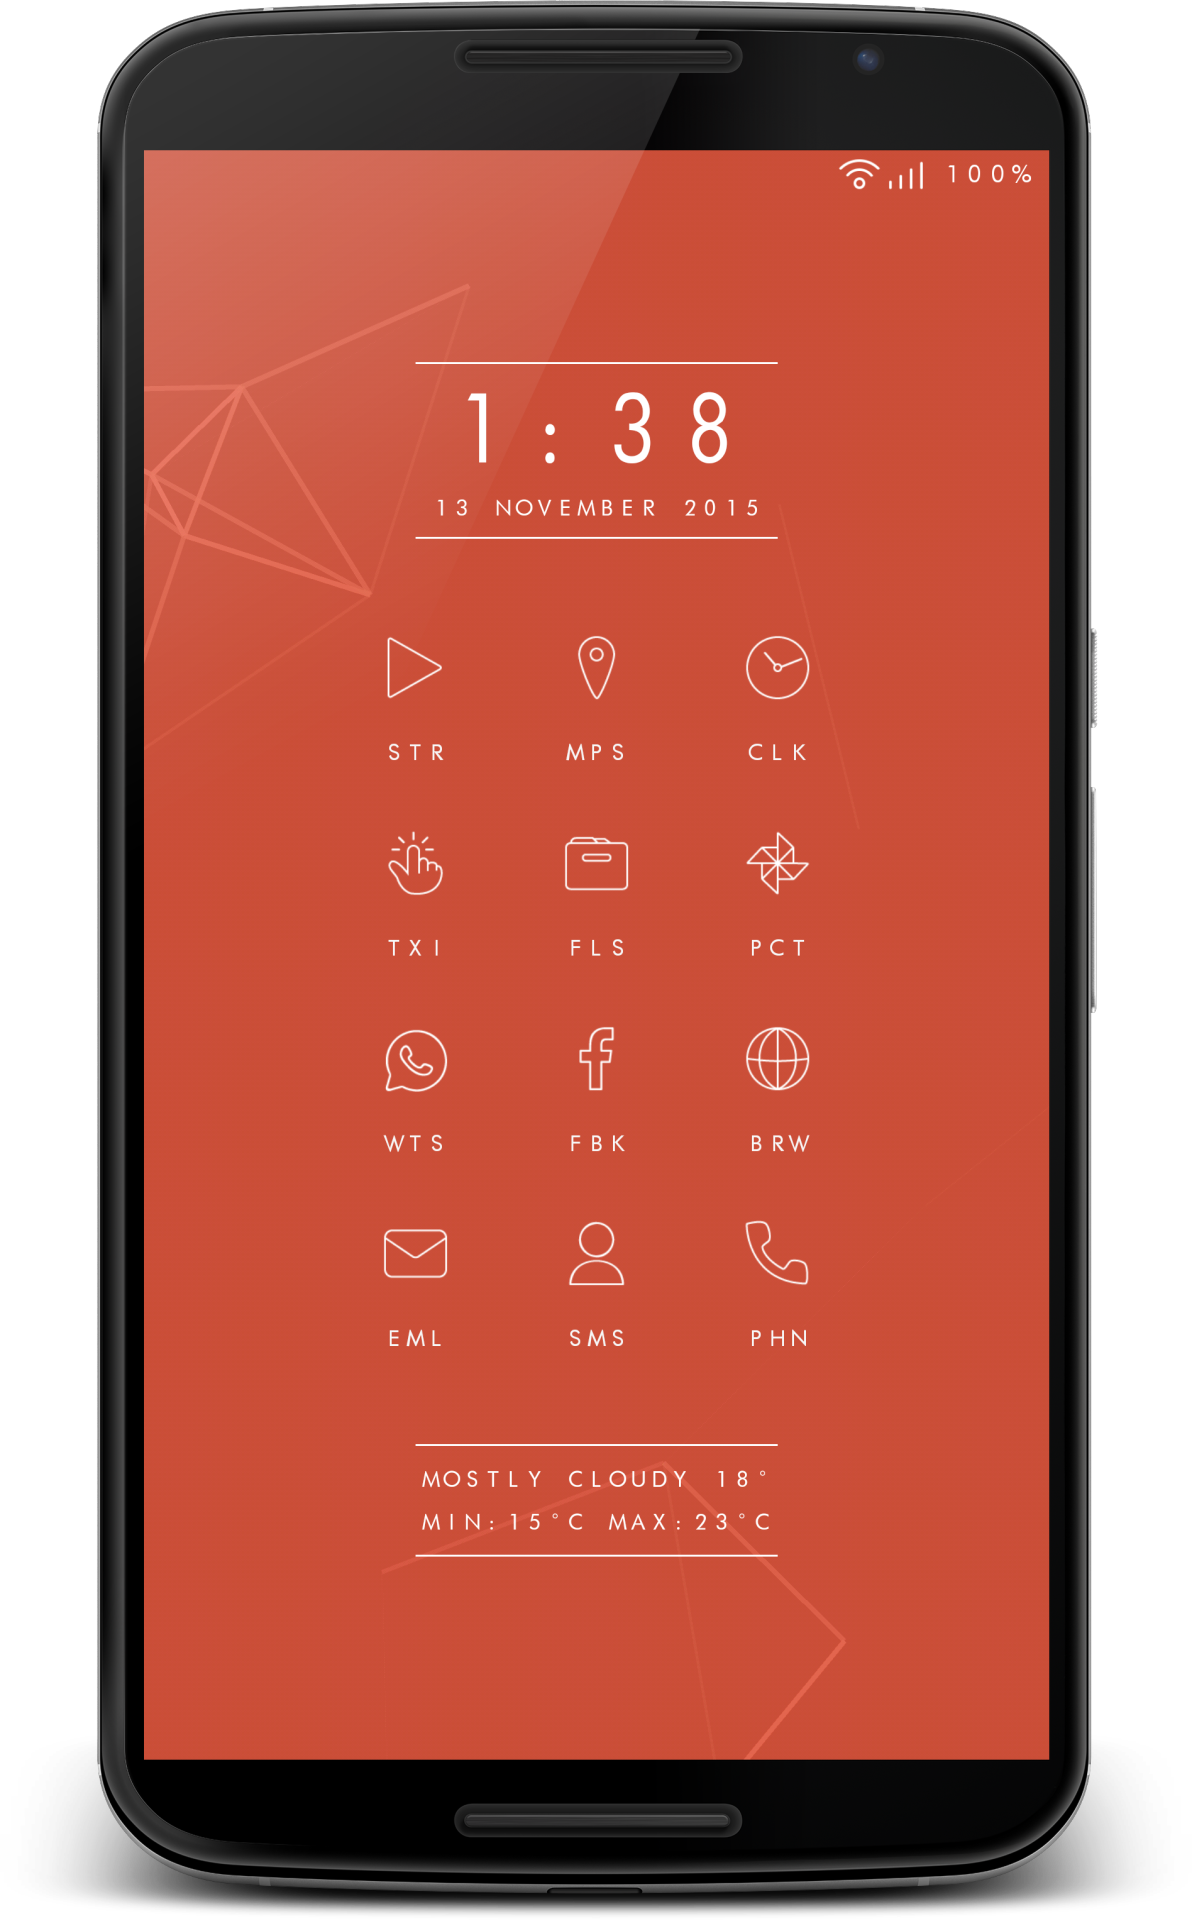 Digital Vanity Android theme, Iphone minimal, Layers theme